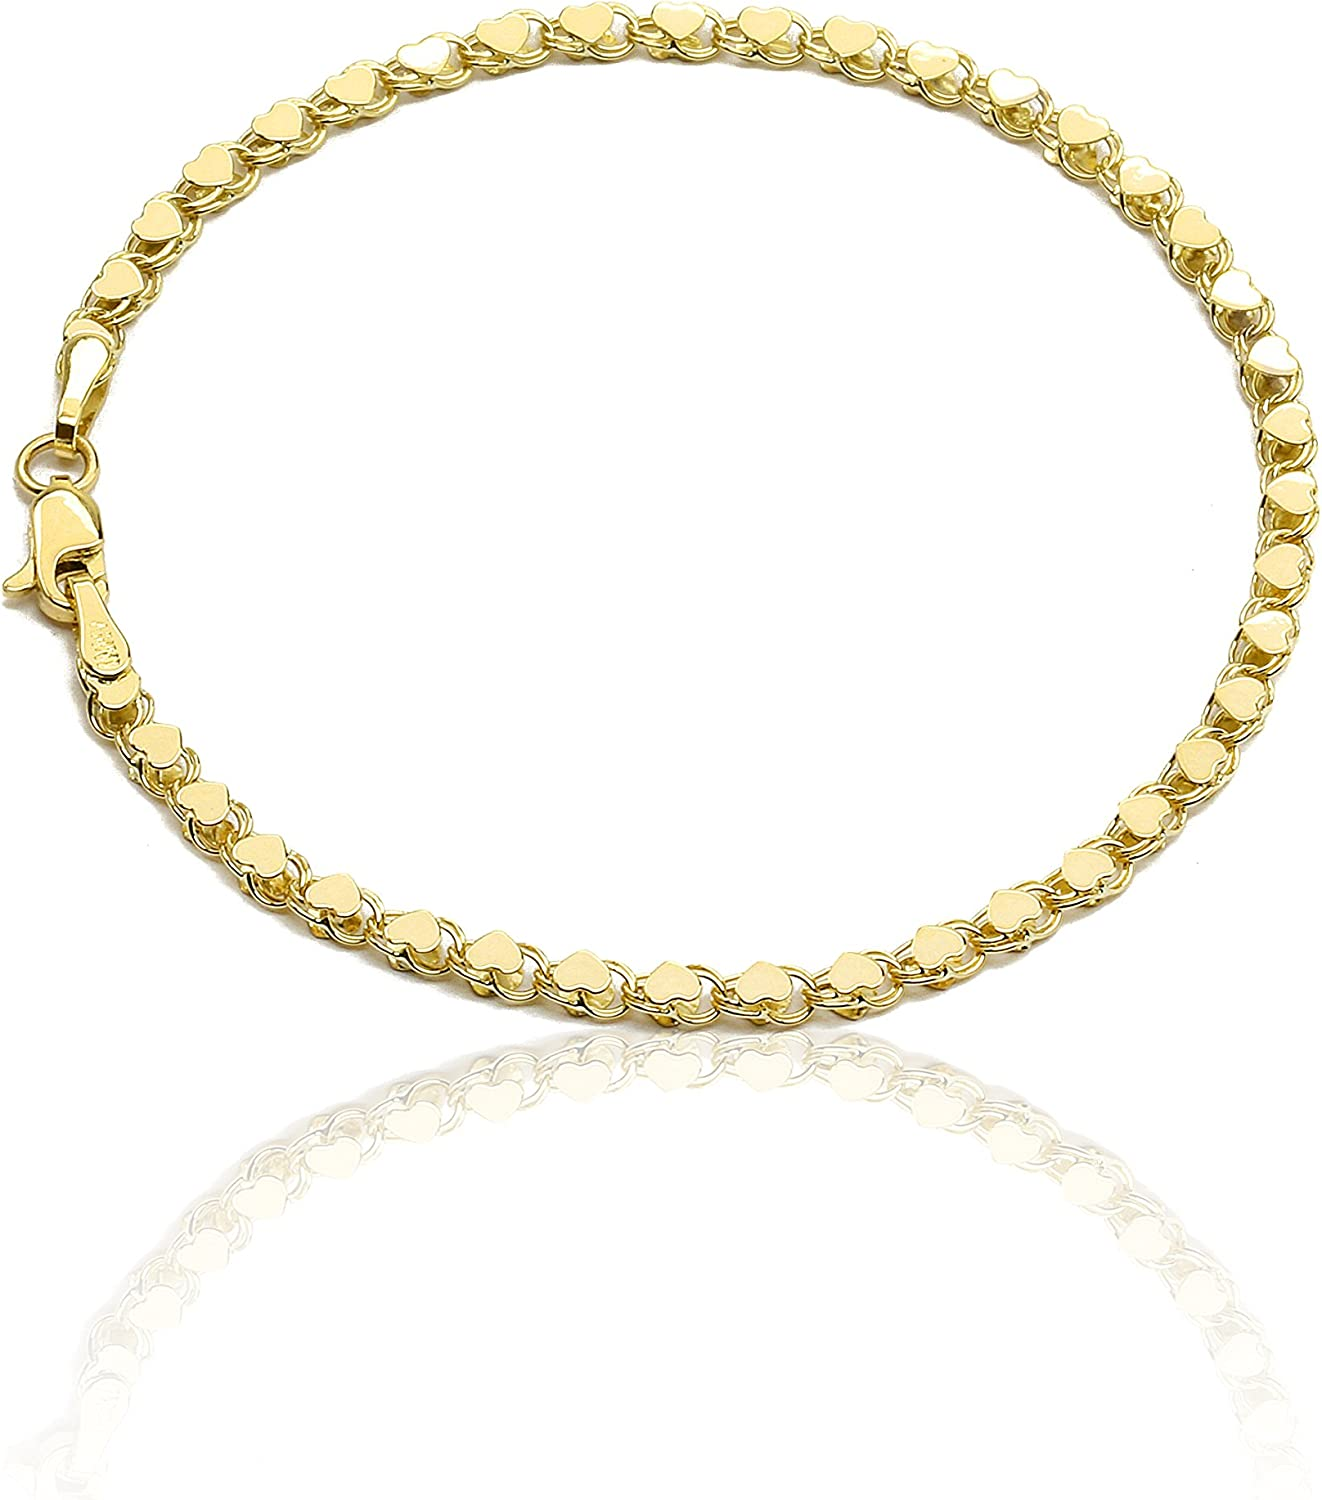 Floreo 10k Yellow Gold 3mm Relationship and Friendship Mirror Chain Hand and Ankle Bracelet with Heart Charms